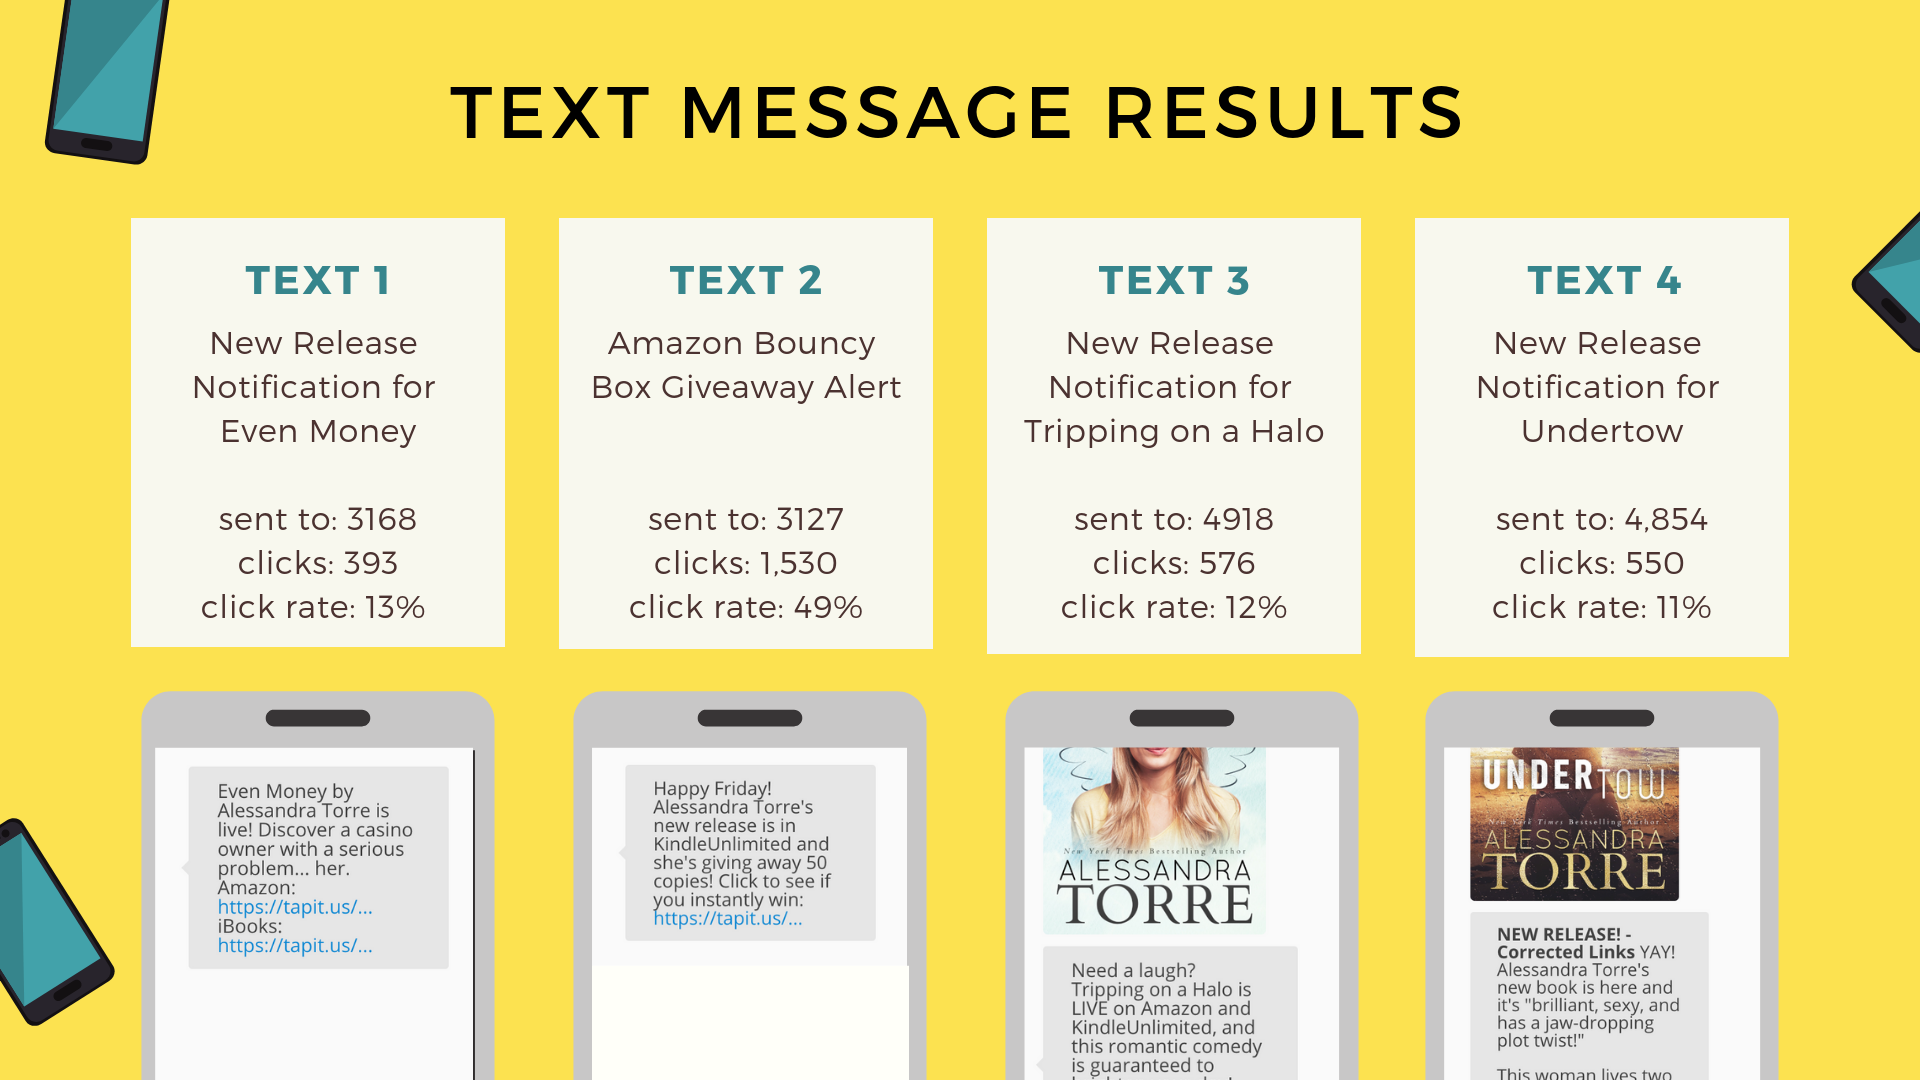 text message results image fixed.png